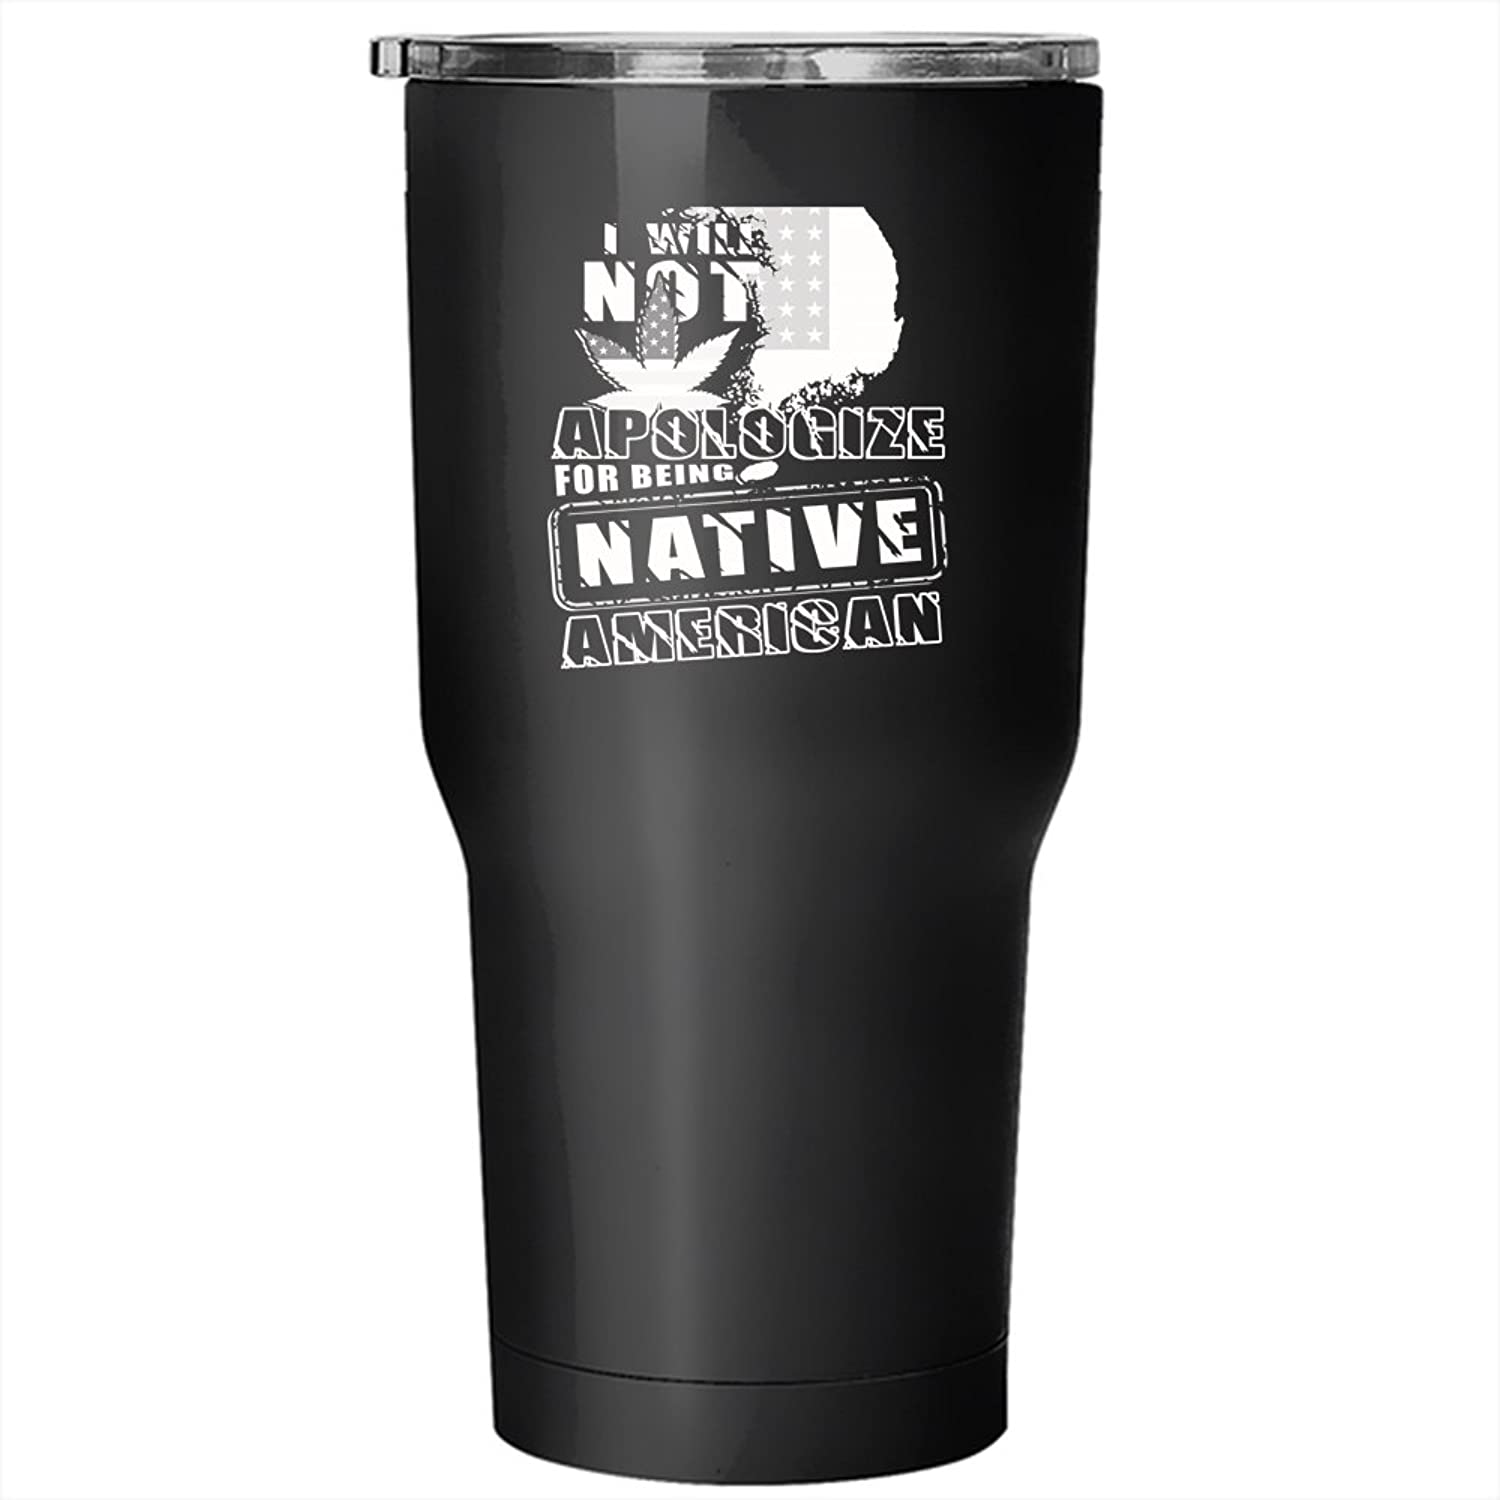 I Will Not Apologize For Being Native American Tumbler 30 oz Stainless Steel, Cool Flag Travel Mug (Tumbler  Black)